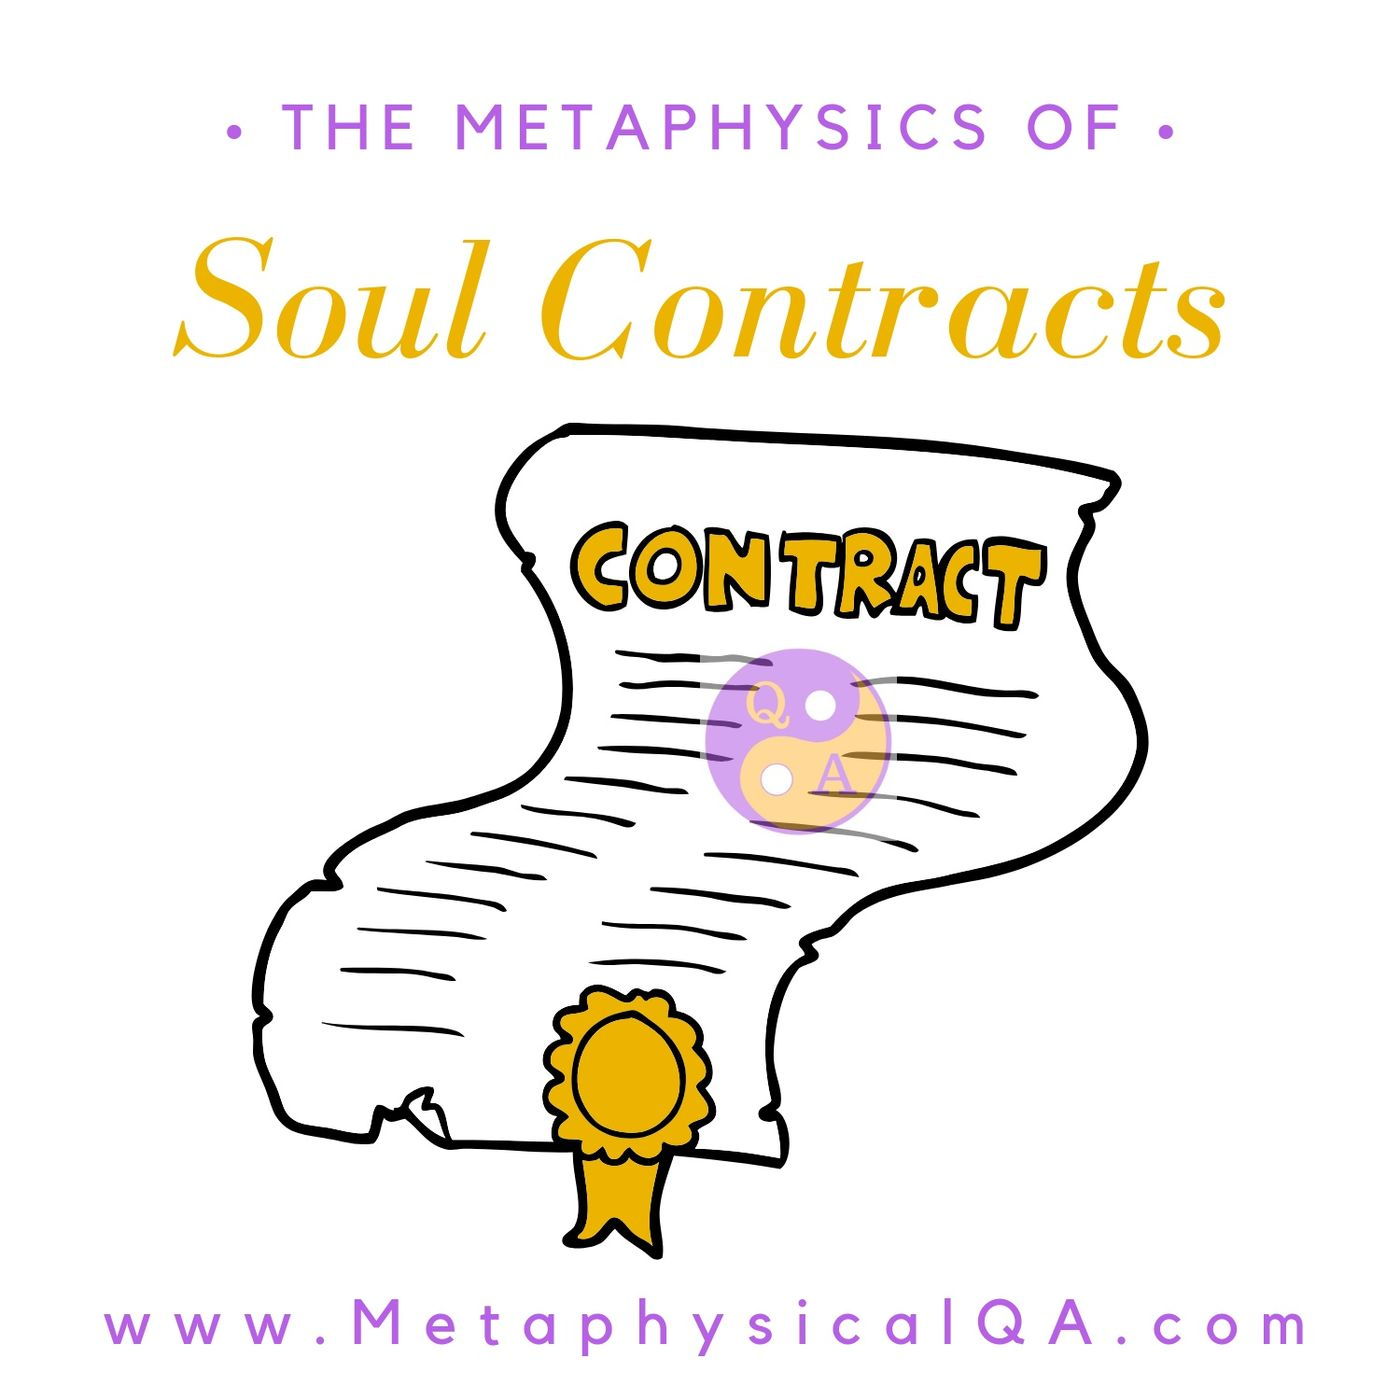 Metaphysics of Soul Contracts